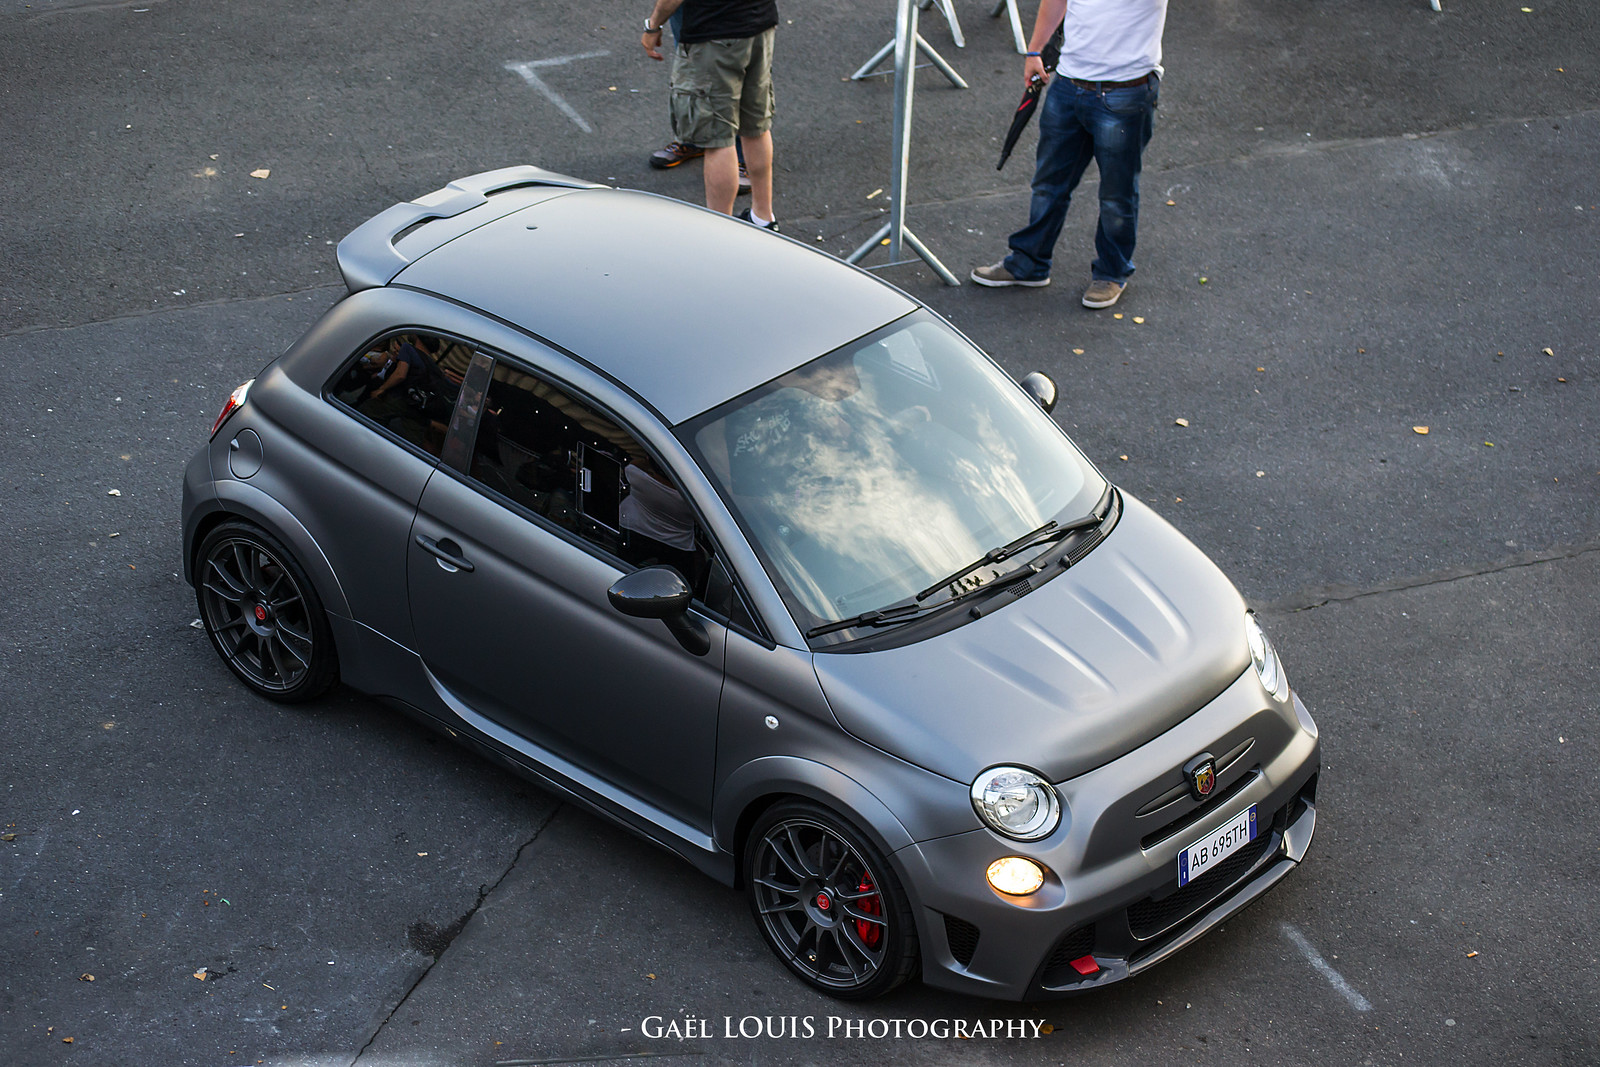 general abarth 695 biposto the fiat forum. Black Bedroom Furniture Sets. Home Design Ideas